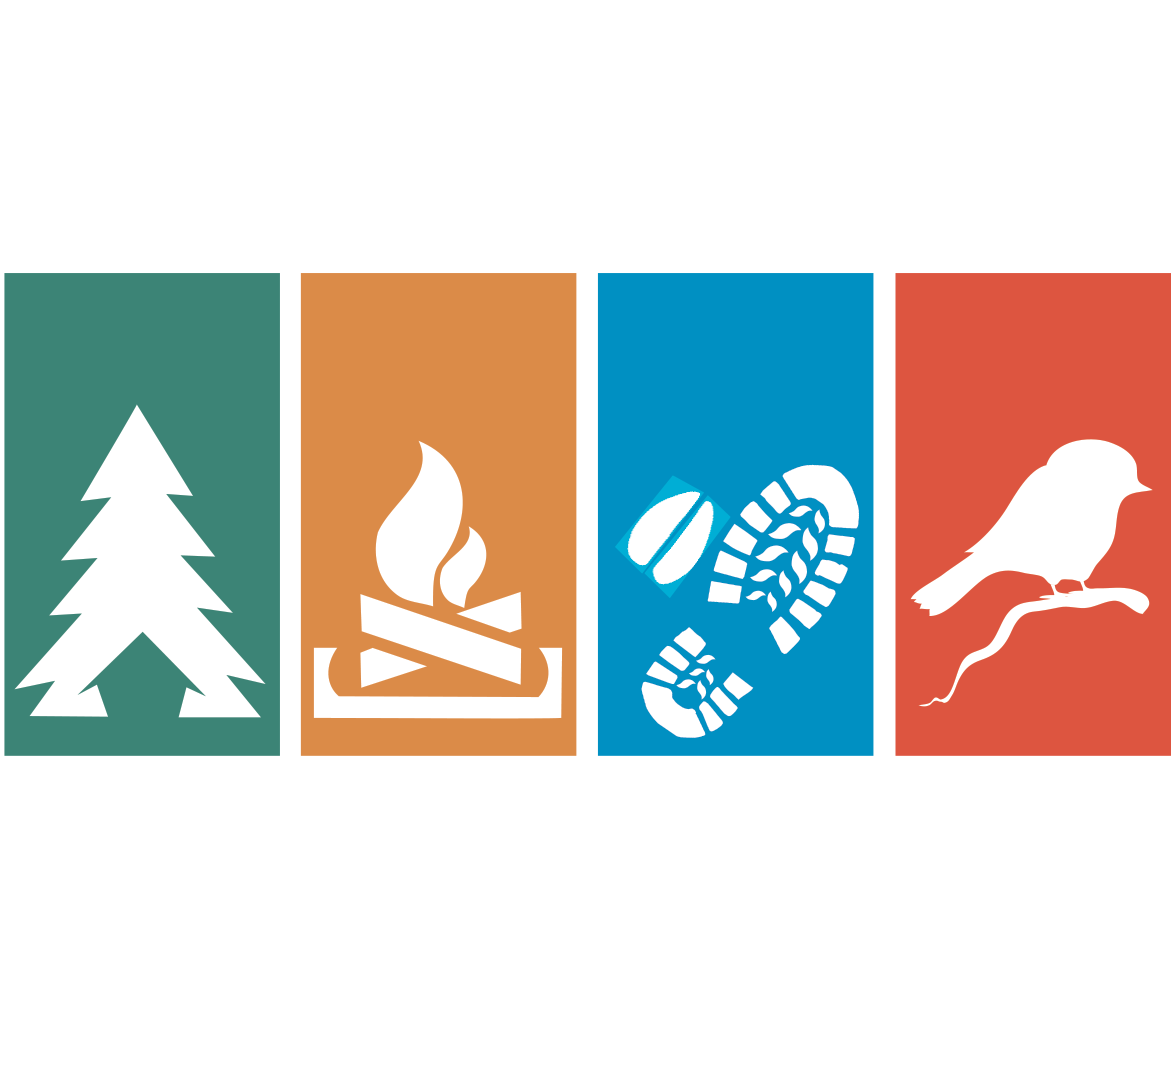 tirnanogforestschool